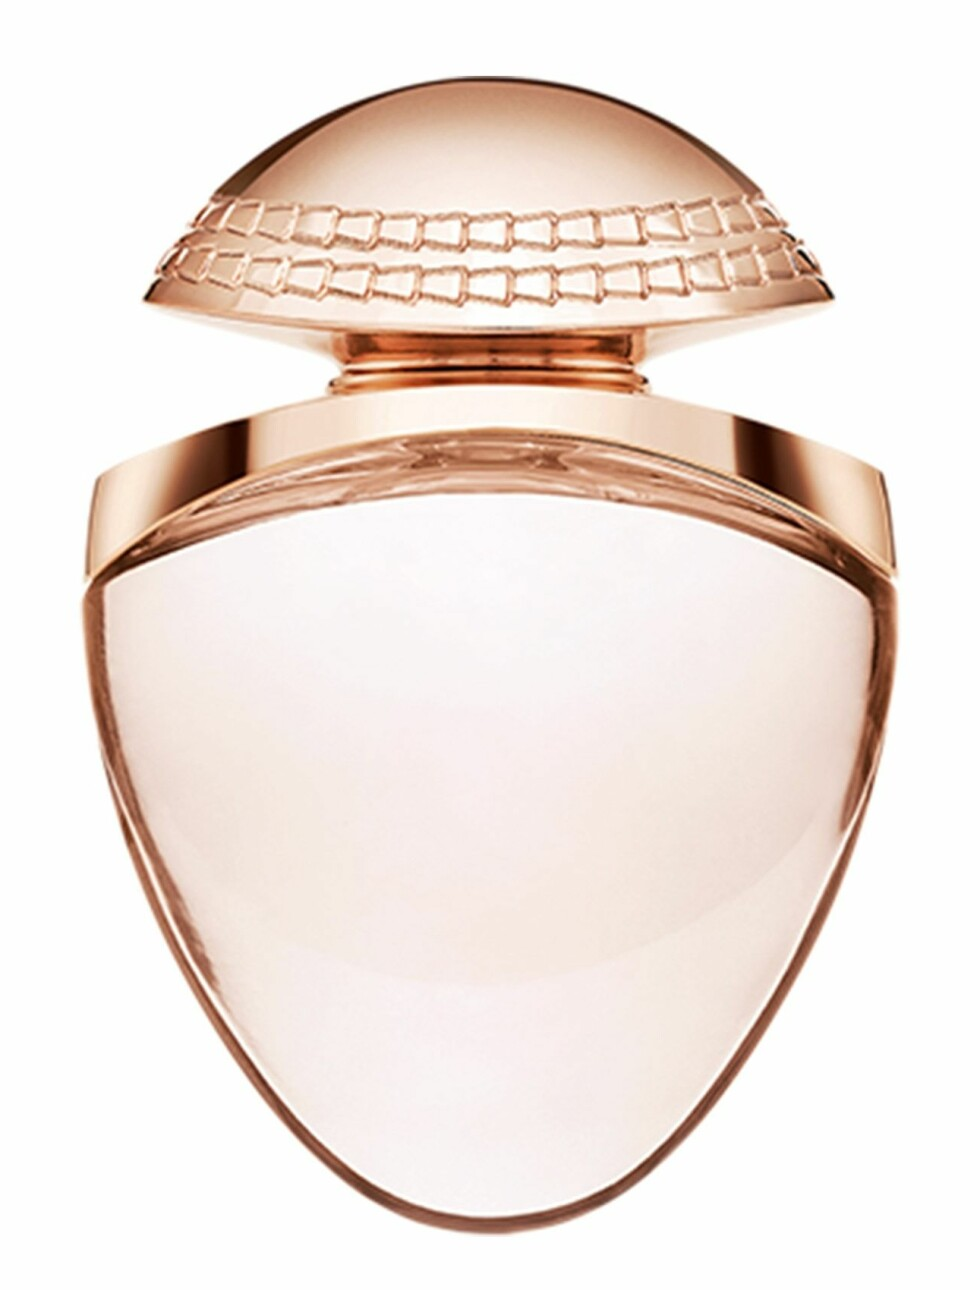 Parfyme fra Bvlgari |499,-| https://www.boozt.com/no/no/bvlgari/rose-goldea-jewel-charm-edp_18553169/18553178?navId=67362&group=listing&position=1500000